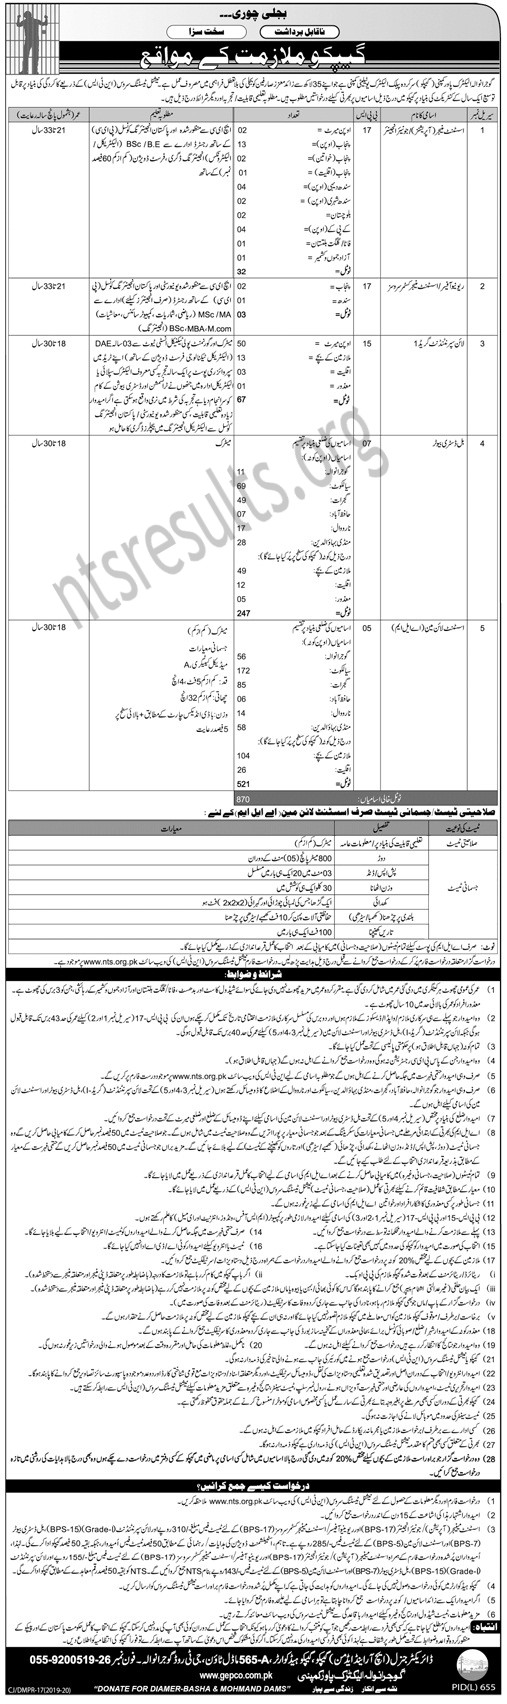 Gujranwala Electric Power Company GEPCO Jobs Via NTS